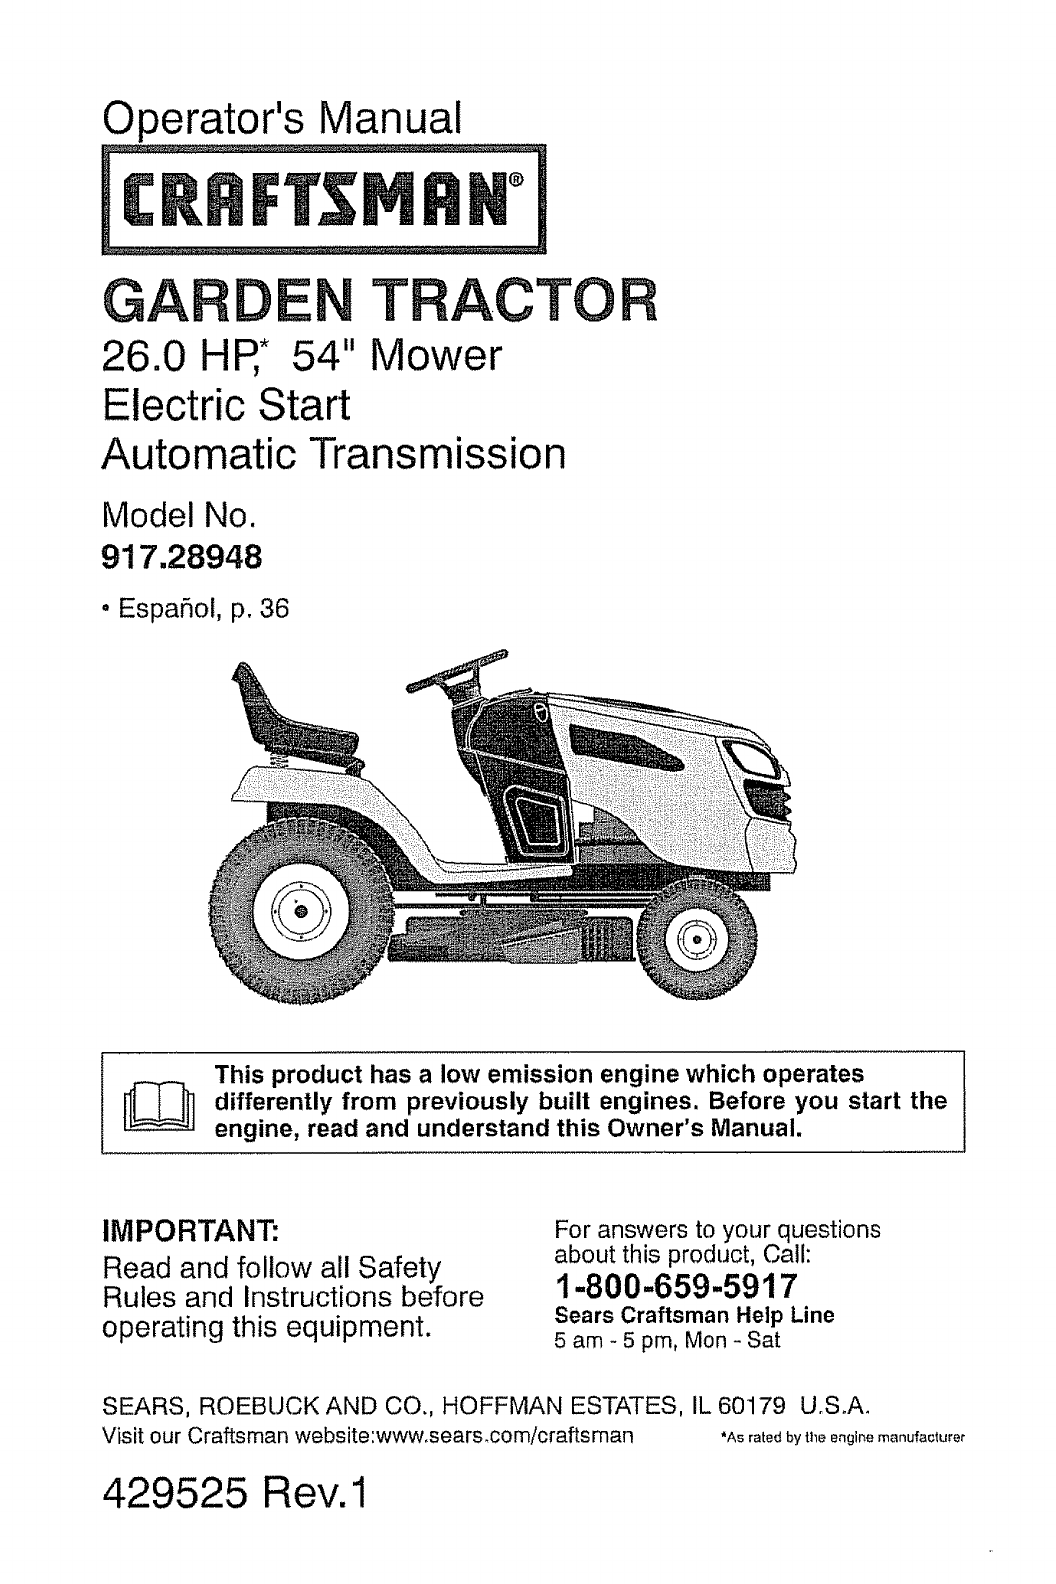 f42a5d10 c59b 44bc 8ef4 bdba46ffe3f7 bg1 craftsman lawn mower 28948 user guide manualsonline com  at bakdesigns.co